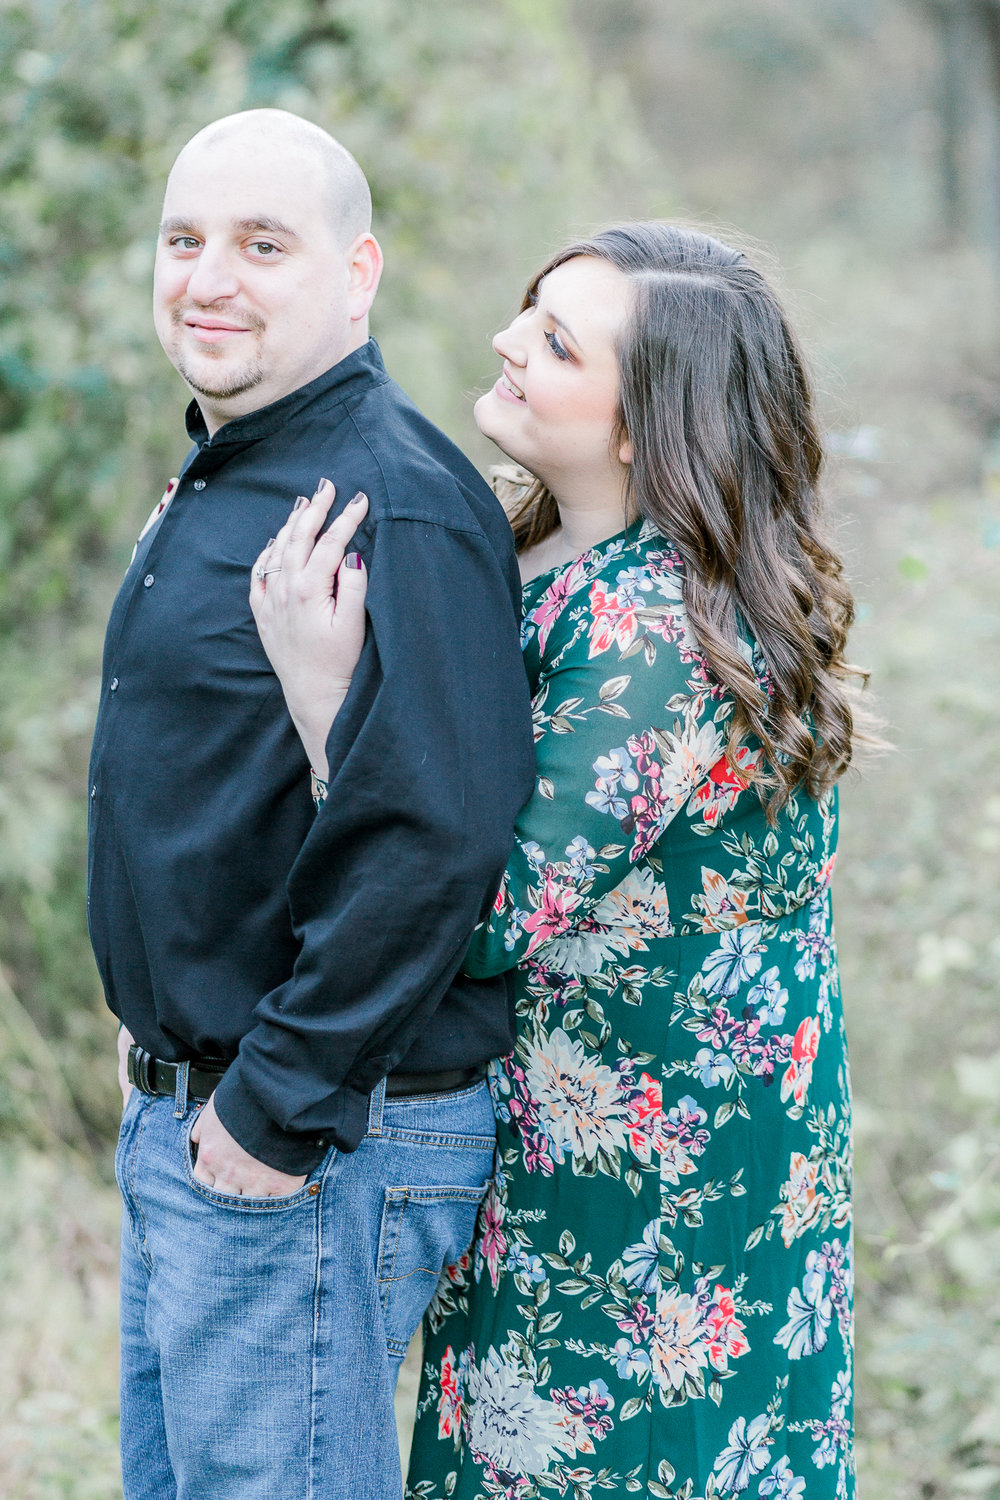 Jacobsburg State Park Nazareth Pennsylvania Woodsy Fall Engagement Session wedding and lifestyle photographer Lytle Photo Co (63 of 64).jpg